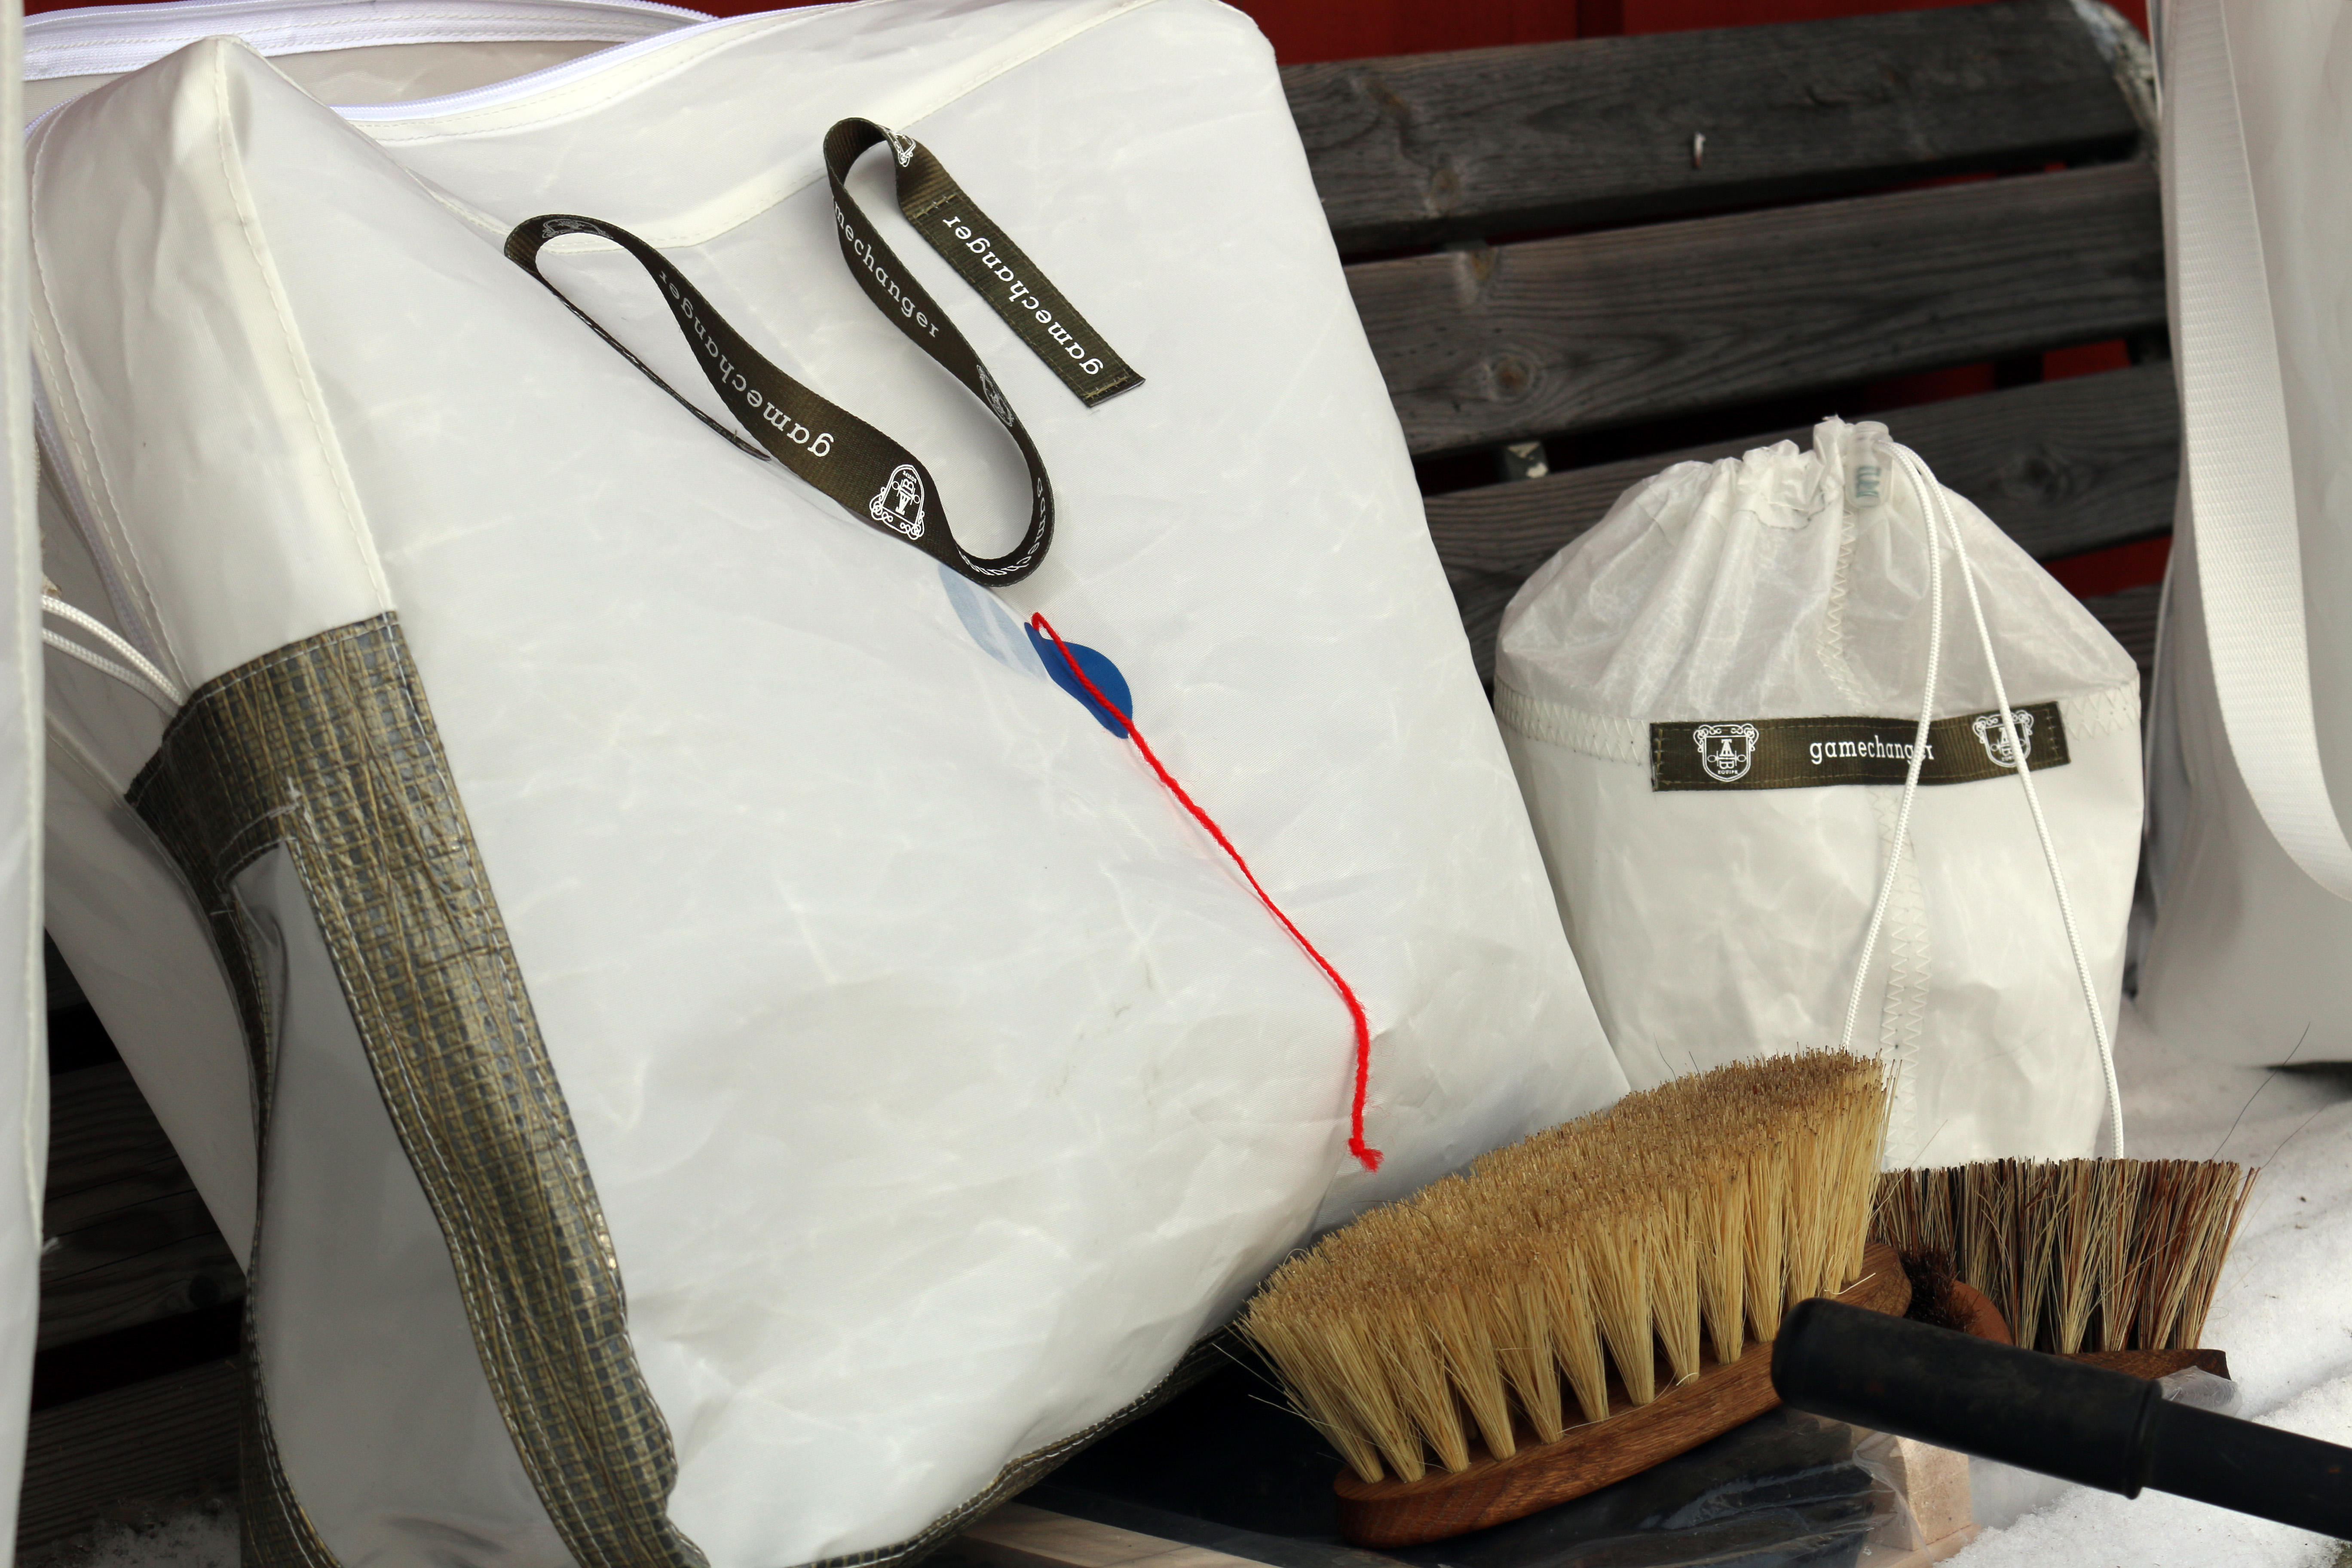 Bags and Brushes